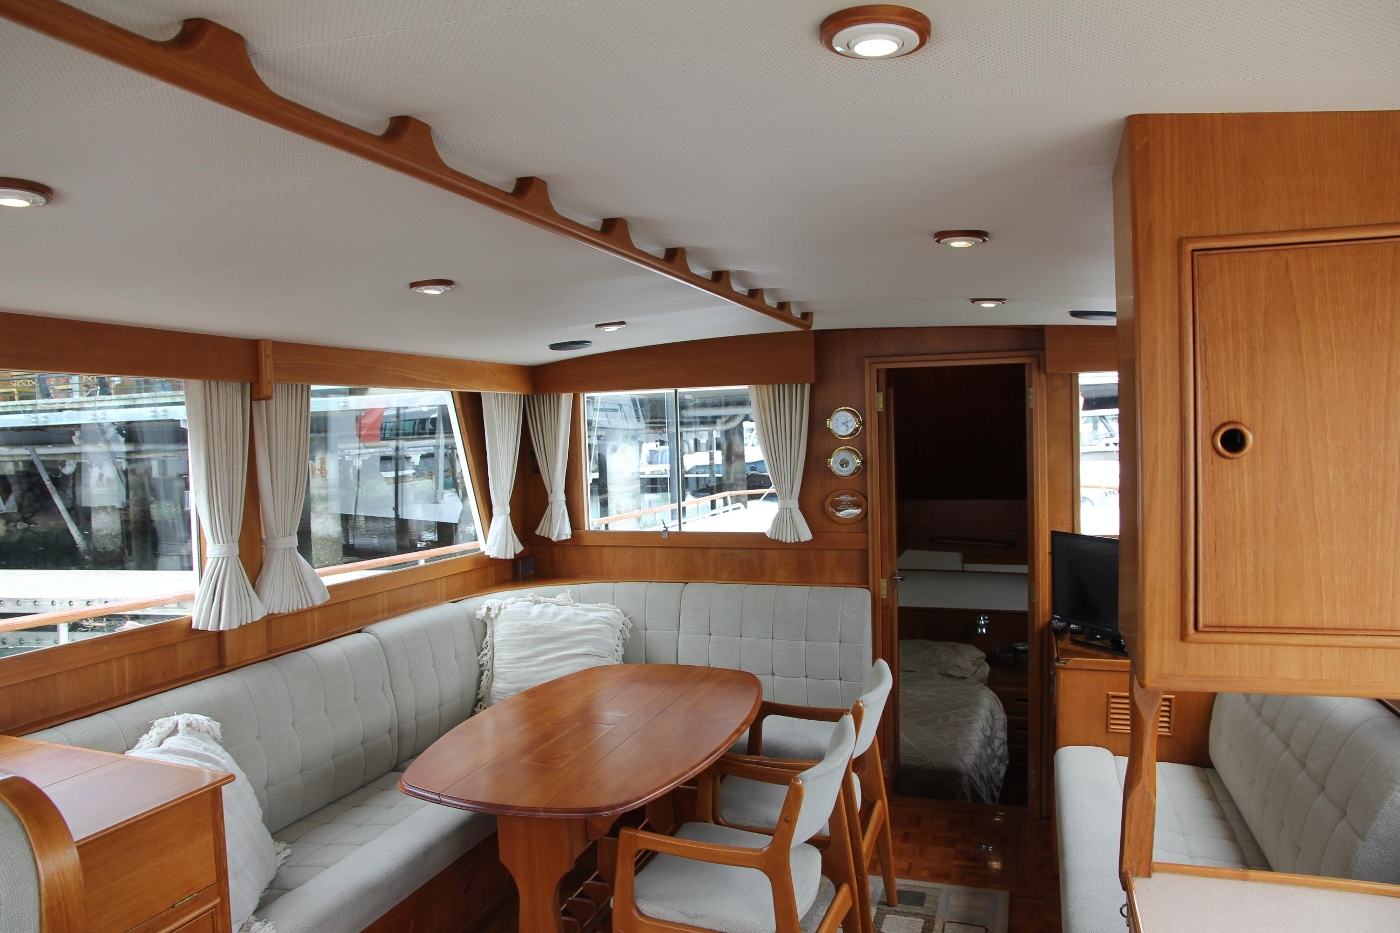 2001 Grand Banks 42 Classic, Salon From Galley